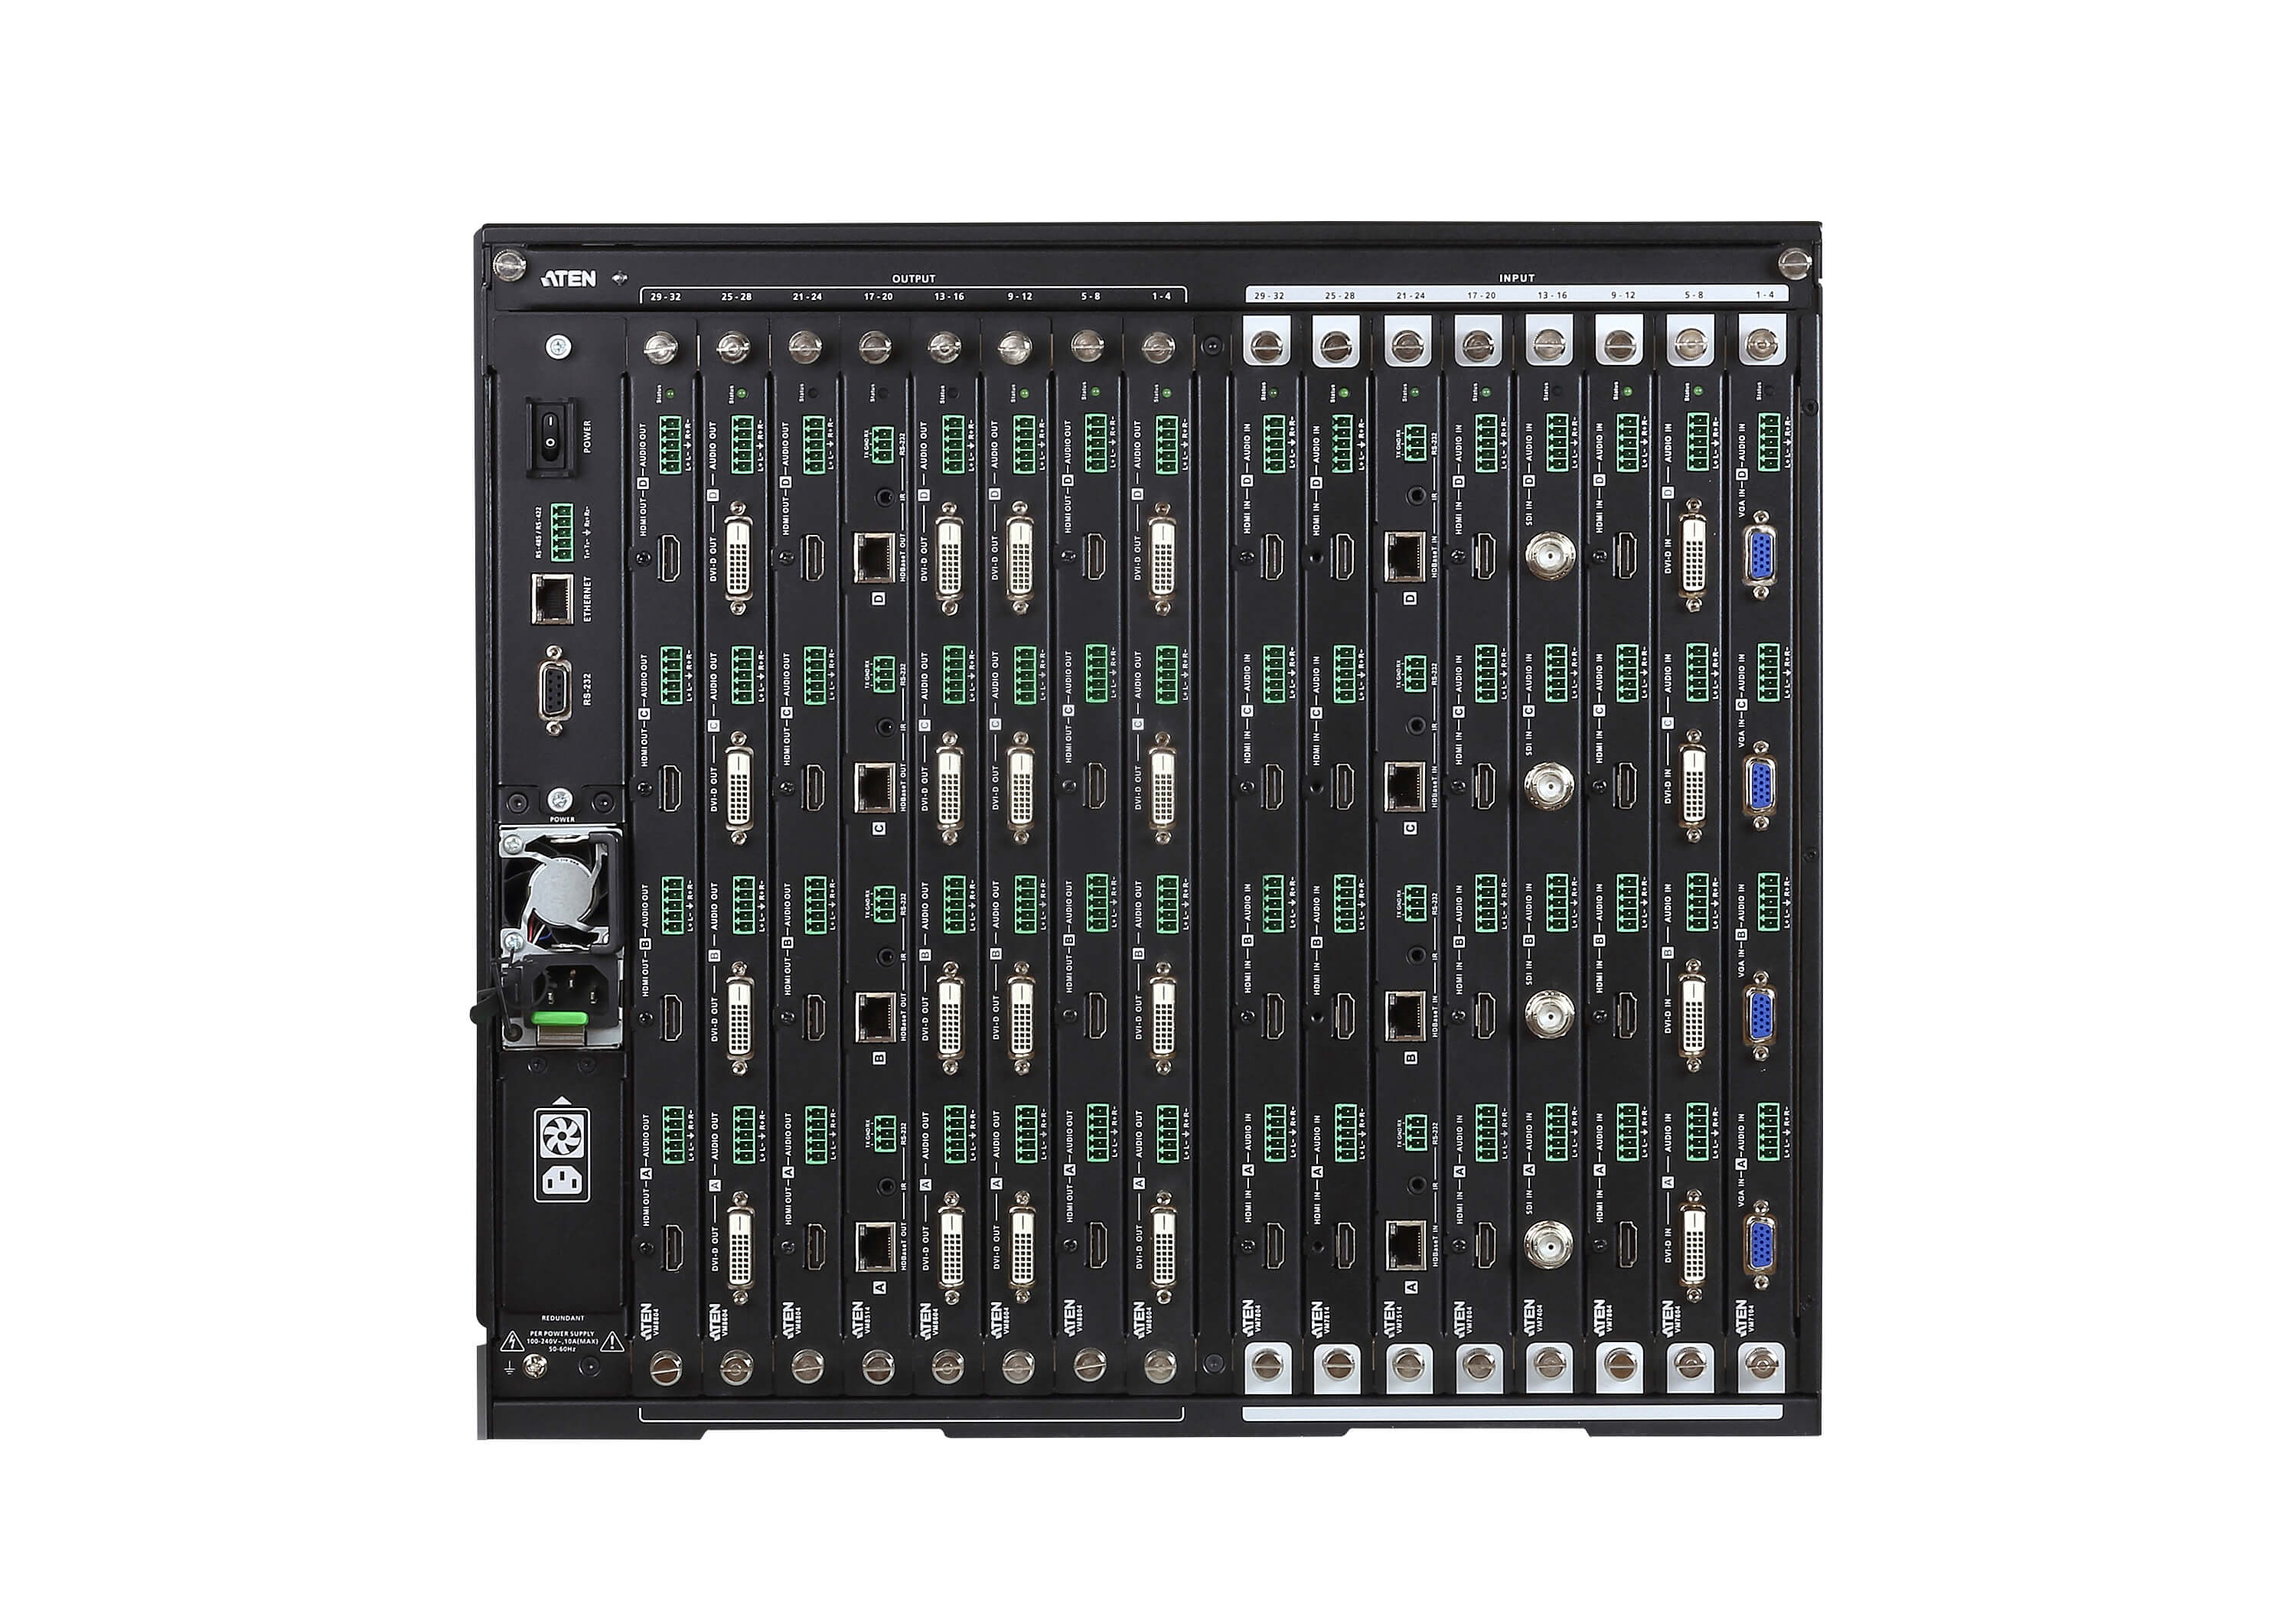 Switch de Matriz Modular 32 x 32 Gen 2-3